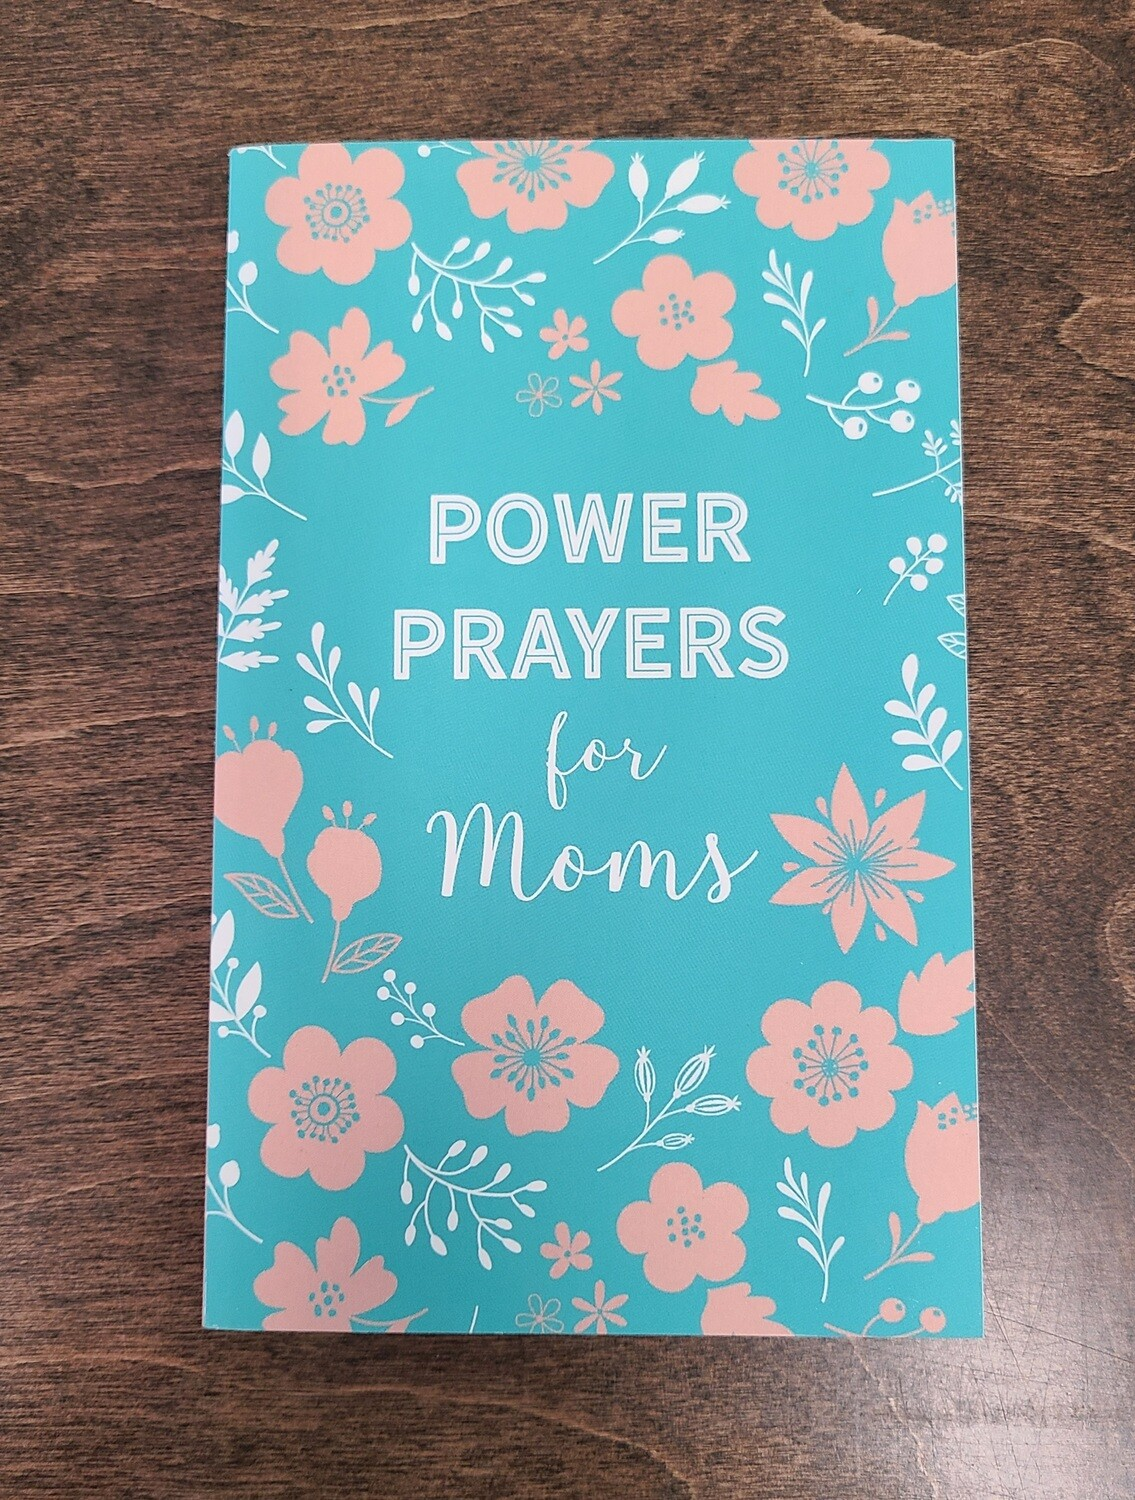 Power Prayers for Moms by Rachel Quillin